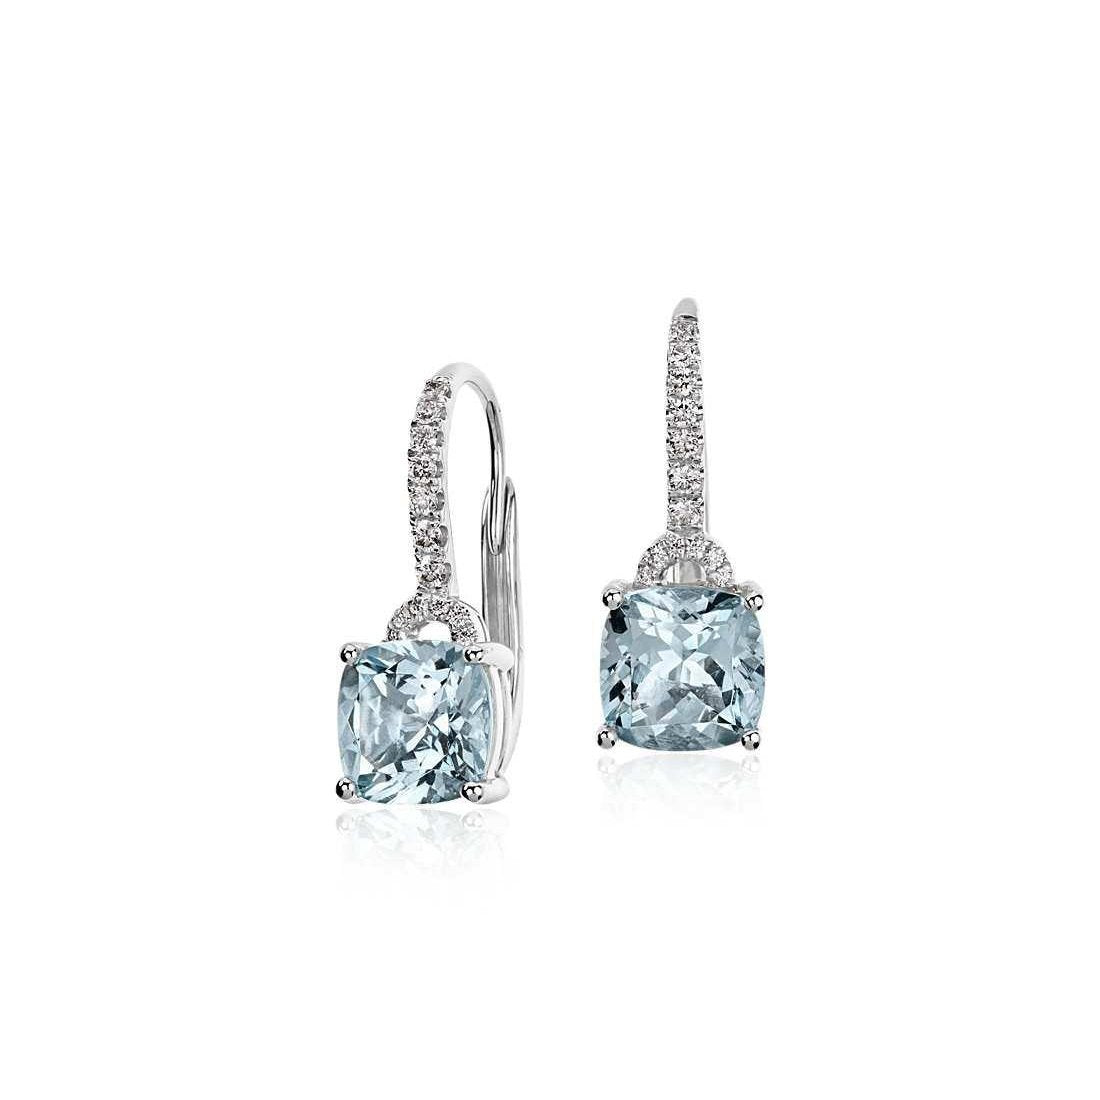 5.50 Ct Prong Set Aquamarine And Diamonds Dangle Earrings 14K Gold Gemstone Earring